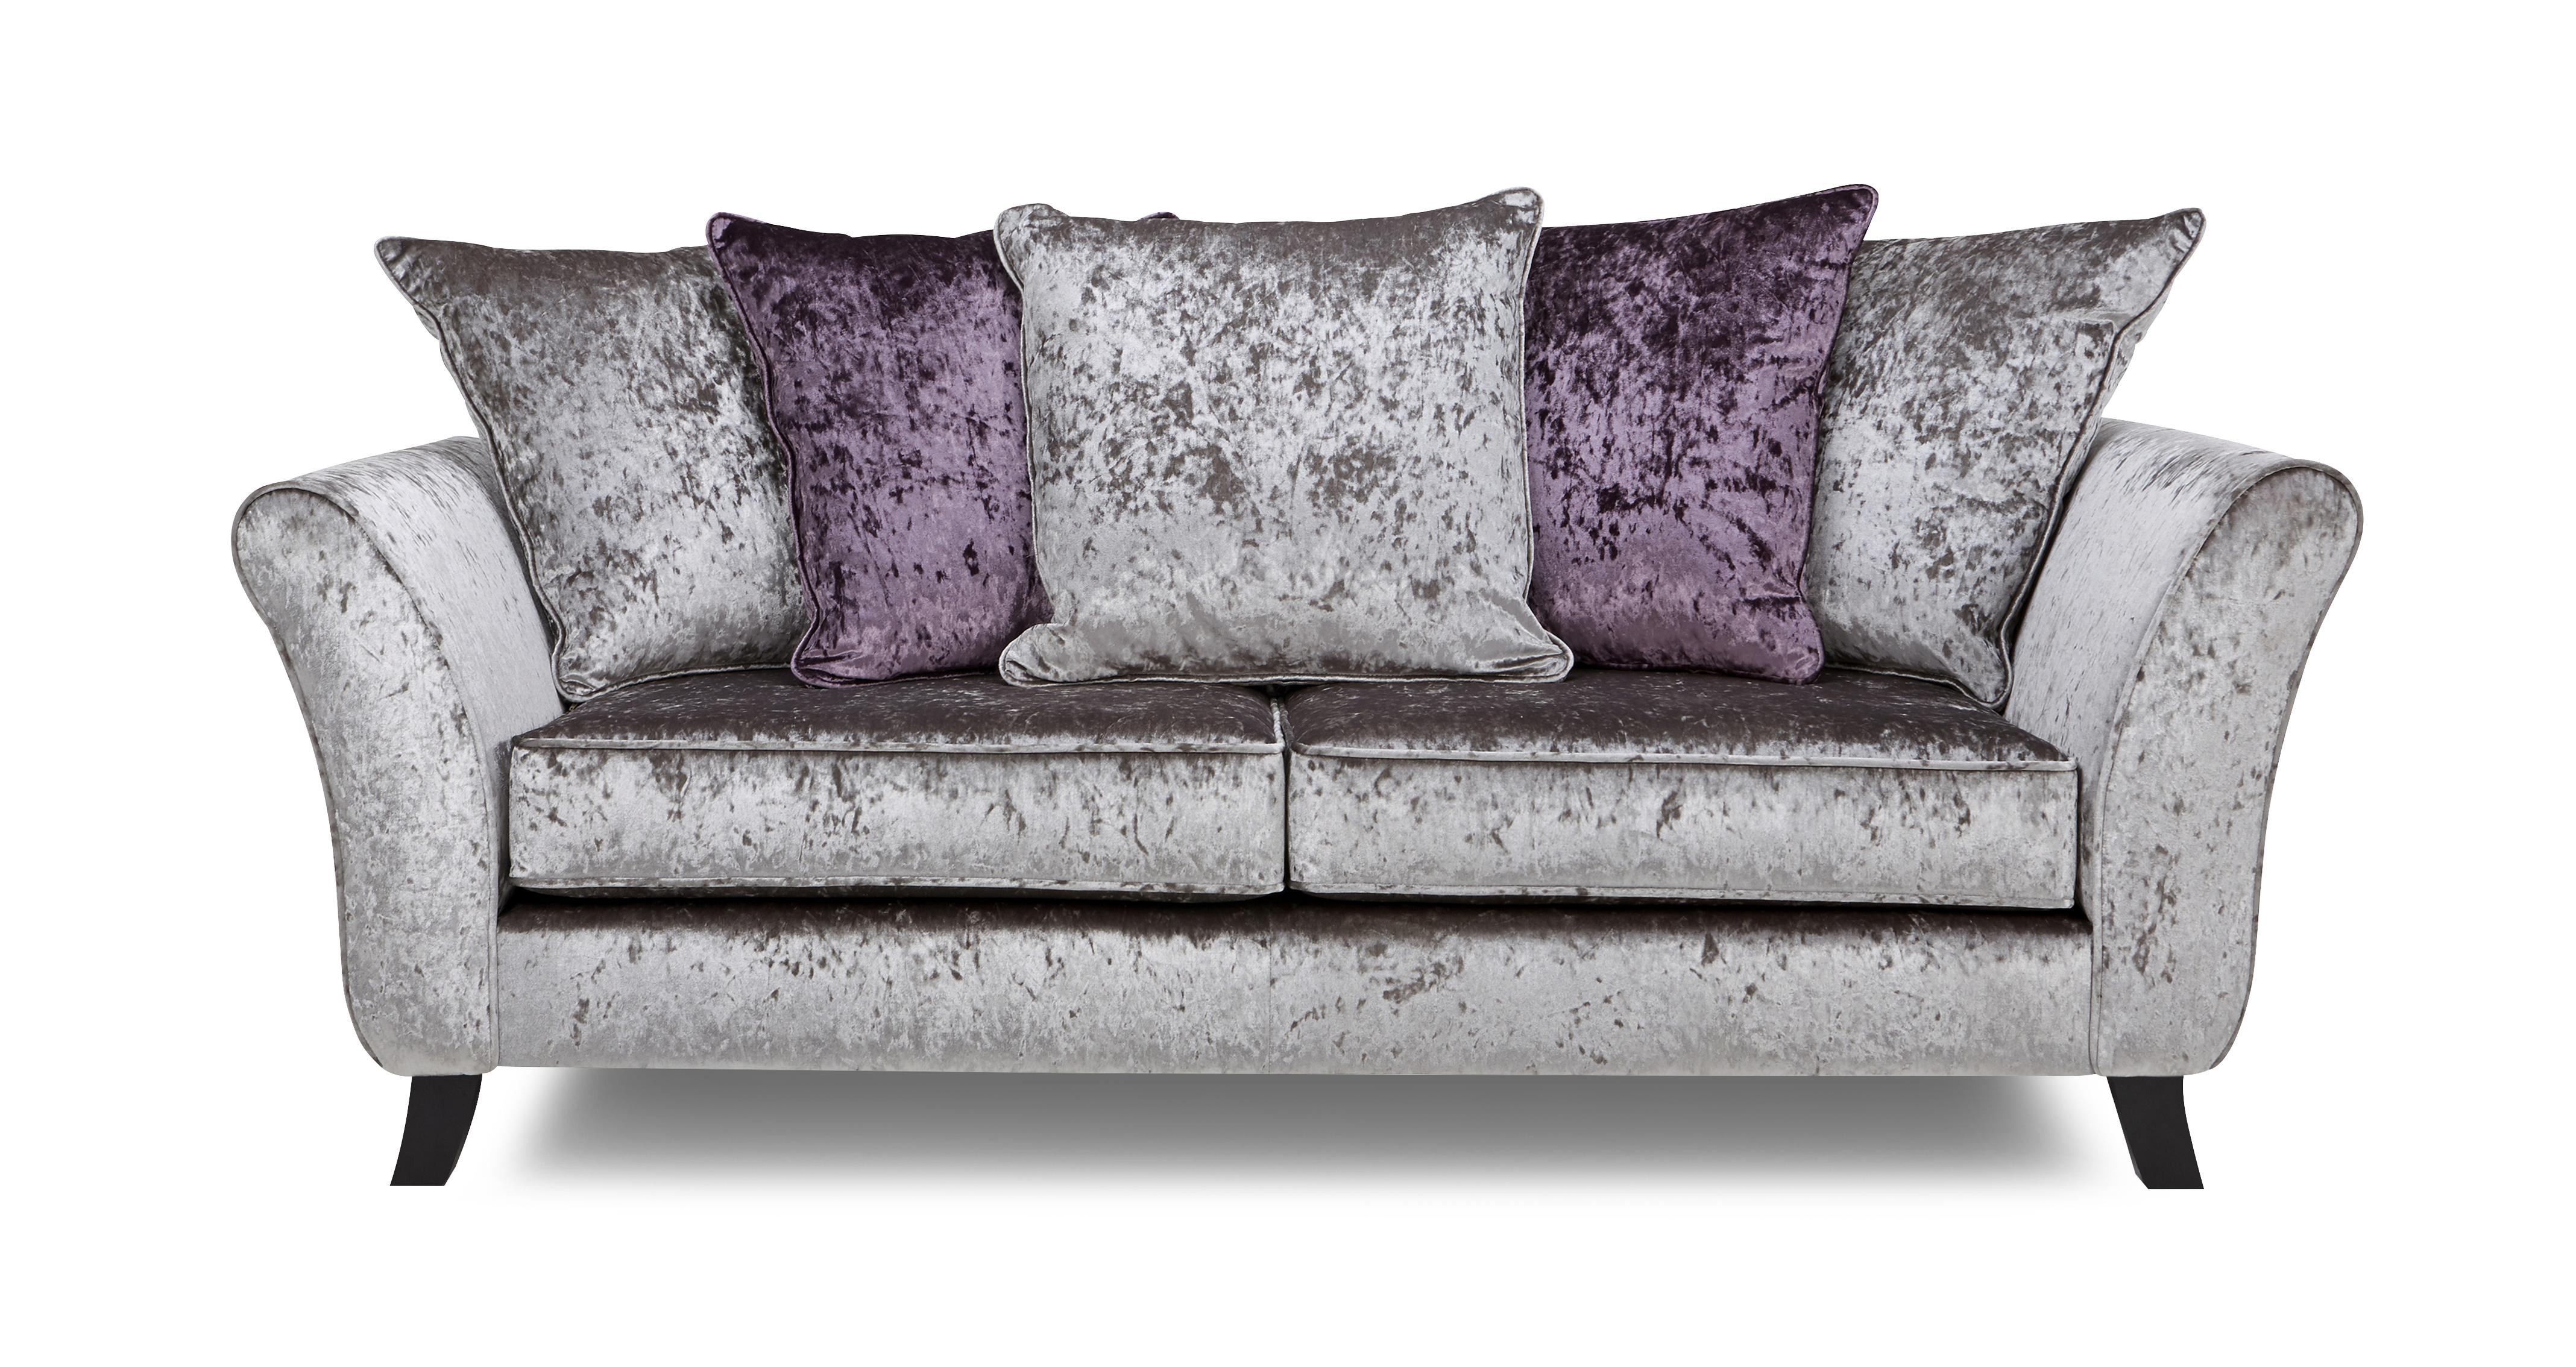 Maie 3 Seater Pillow Back Sofa Krystal